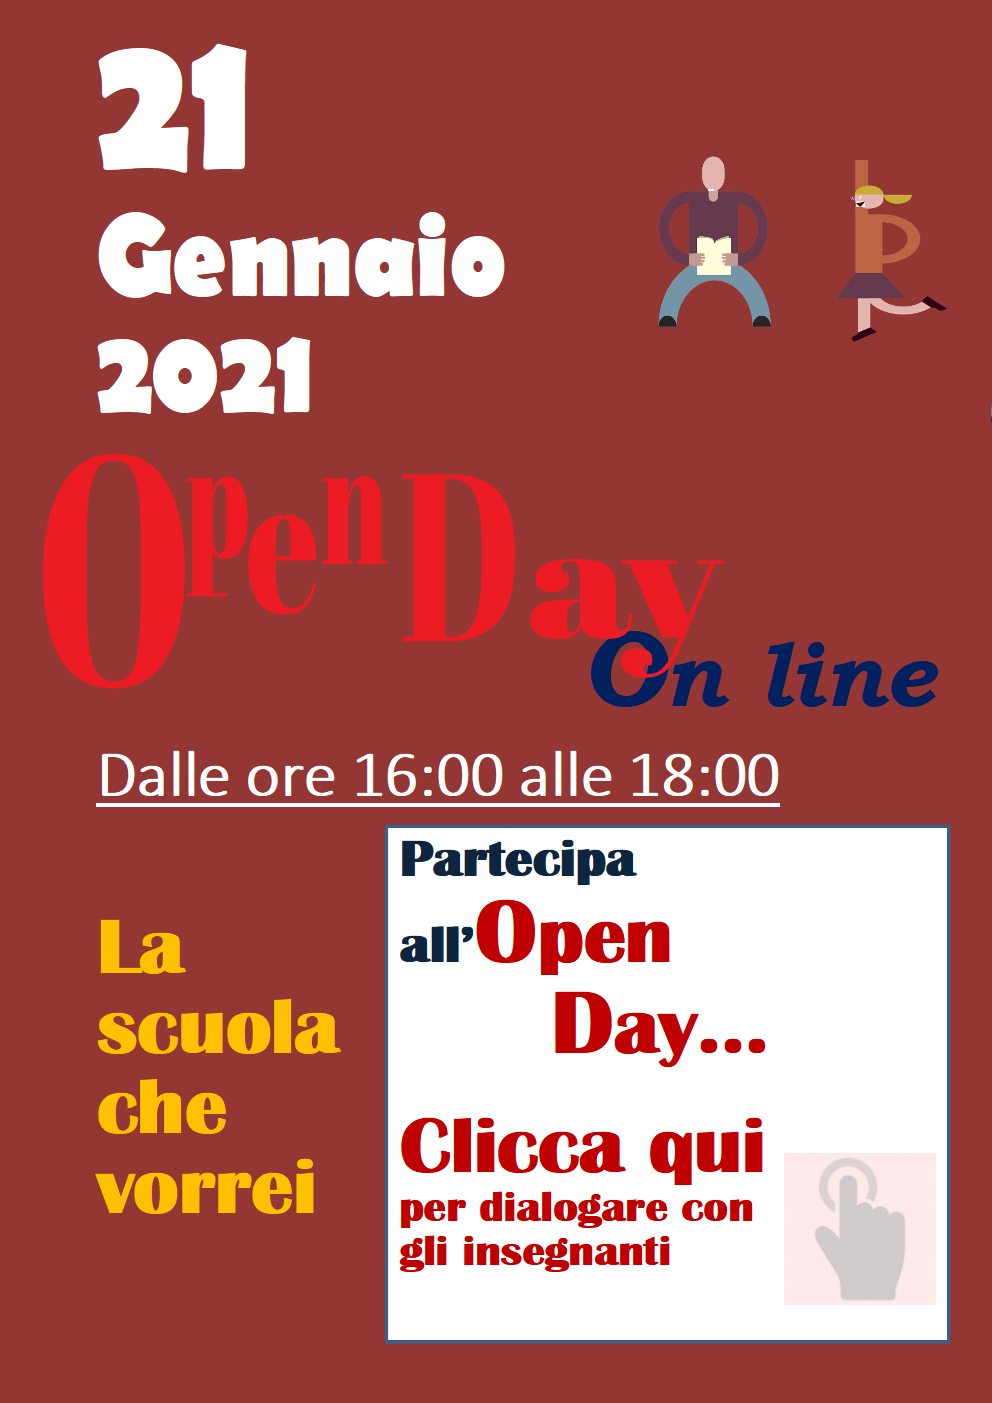 3 Open Day Rossano